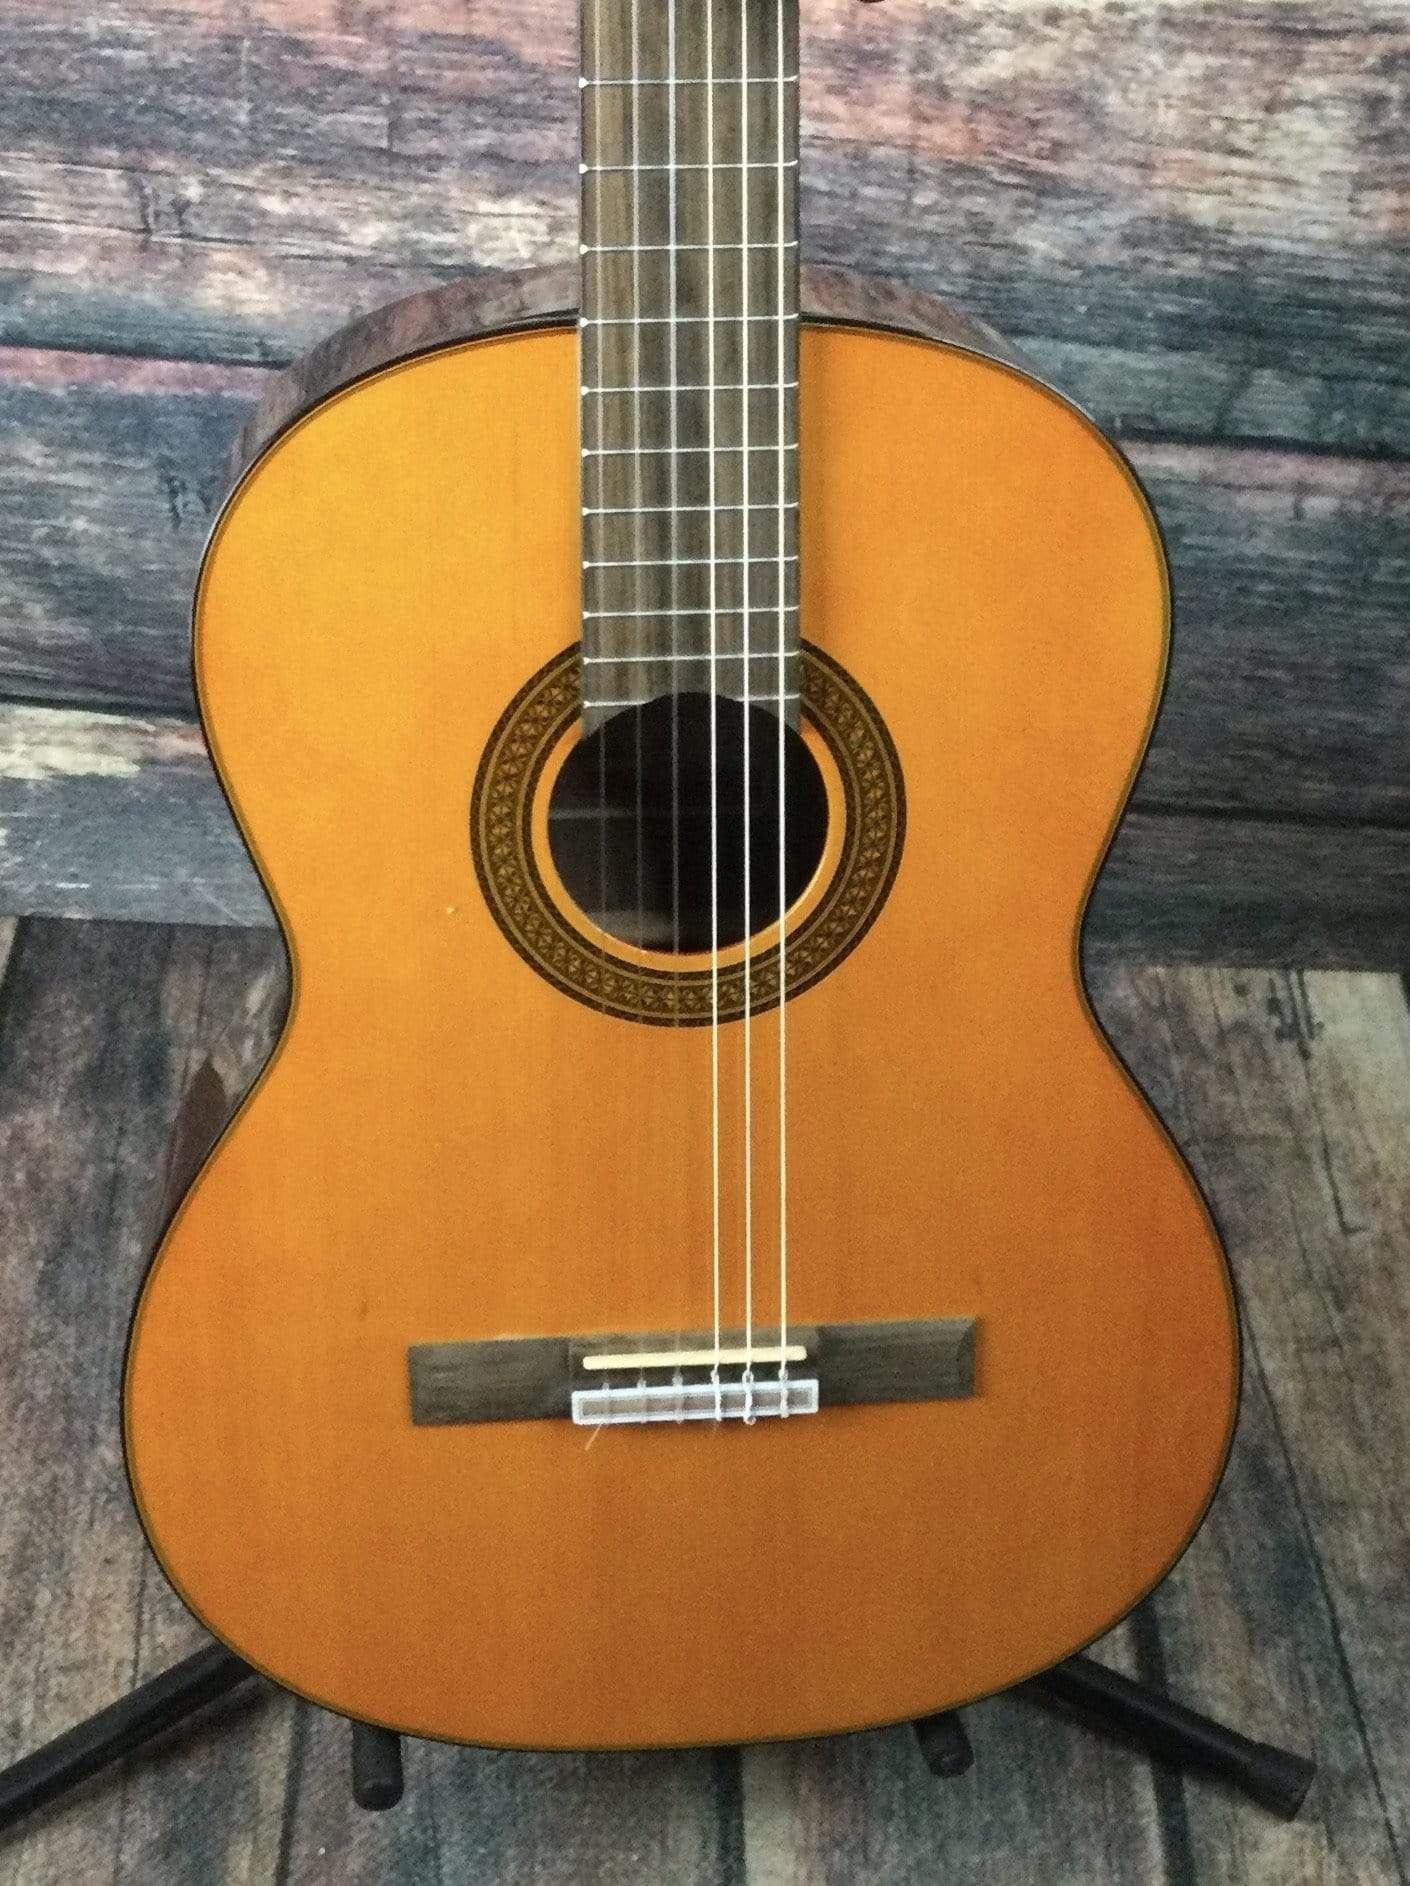 Takamine Classical Guitar Takamine Left Handed GC5 Classical Nylon String Guitar